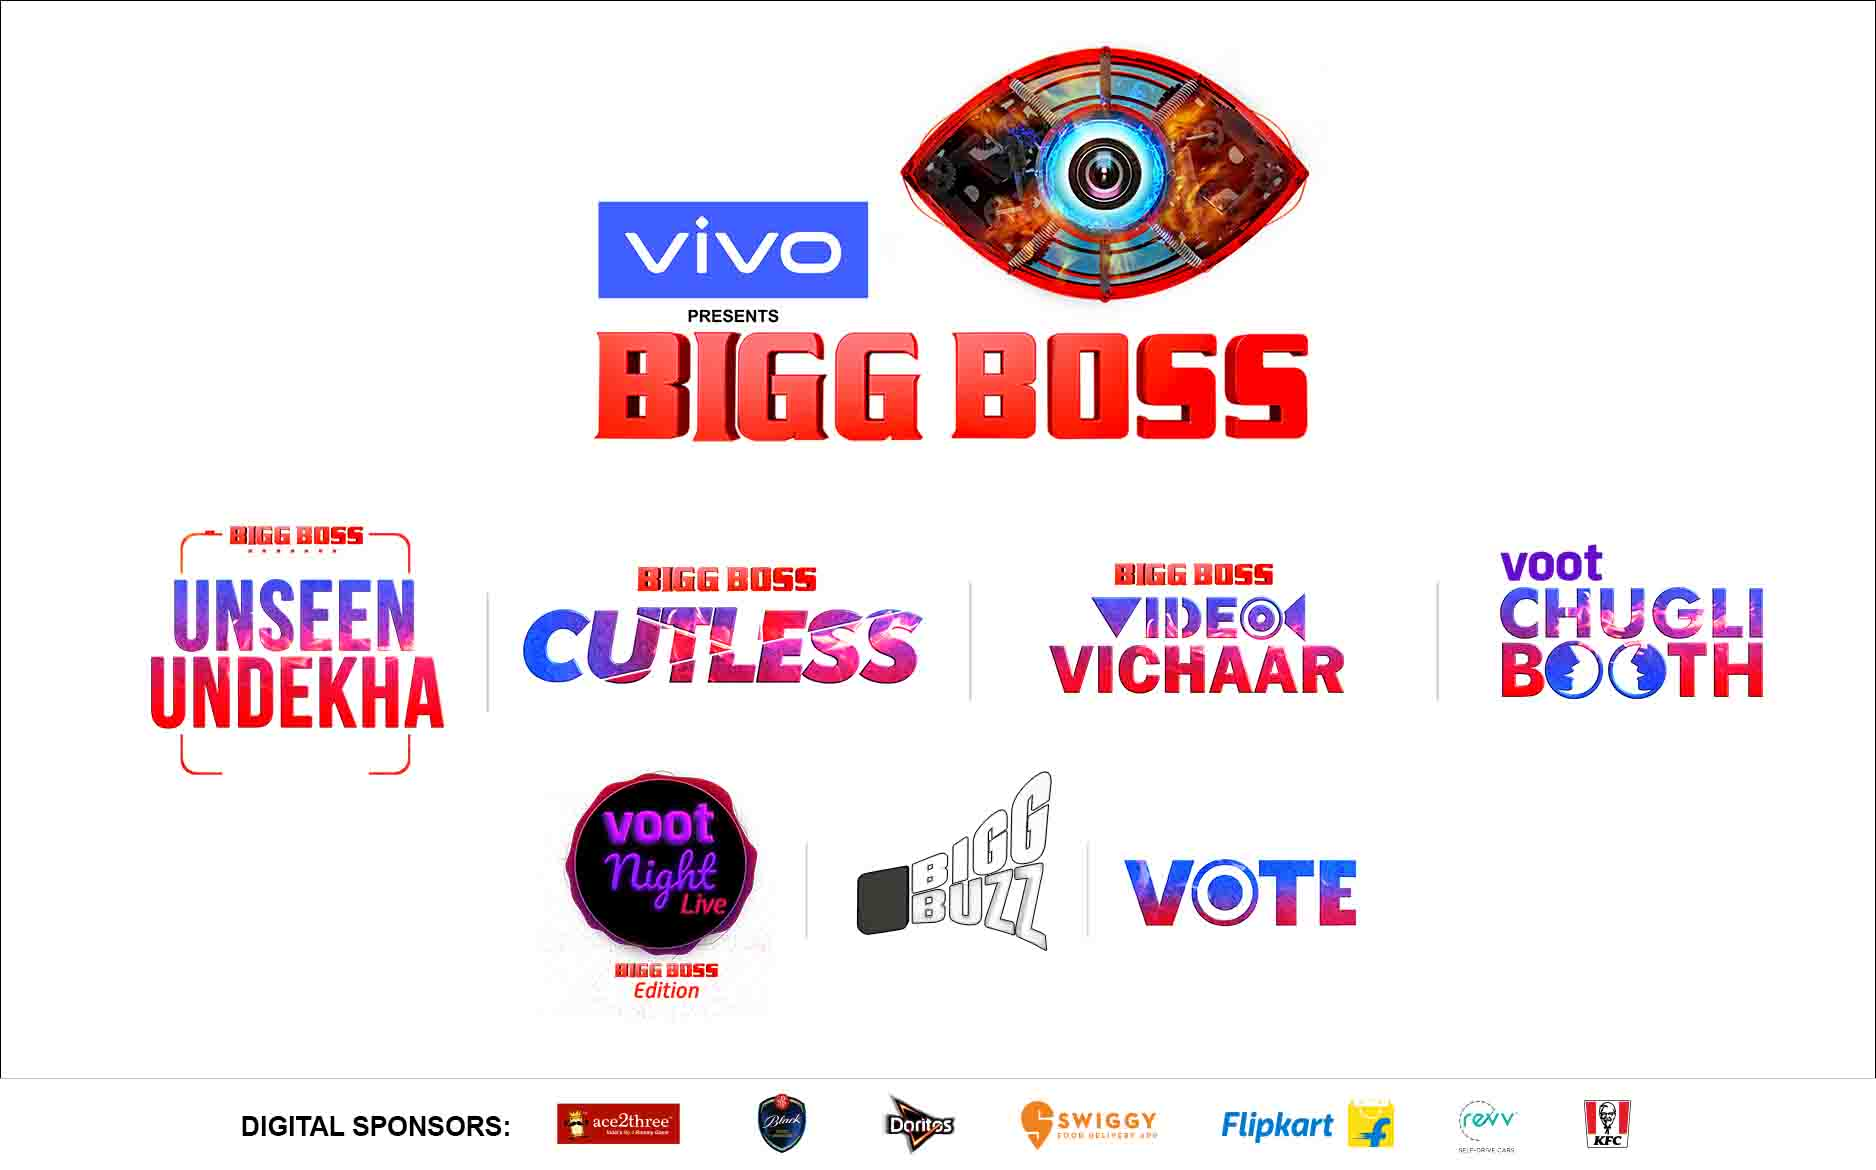 VOOT brings non-stop new entertainment from India's biggest reality show Bigg Boss